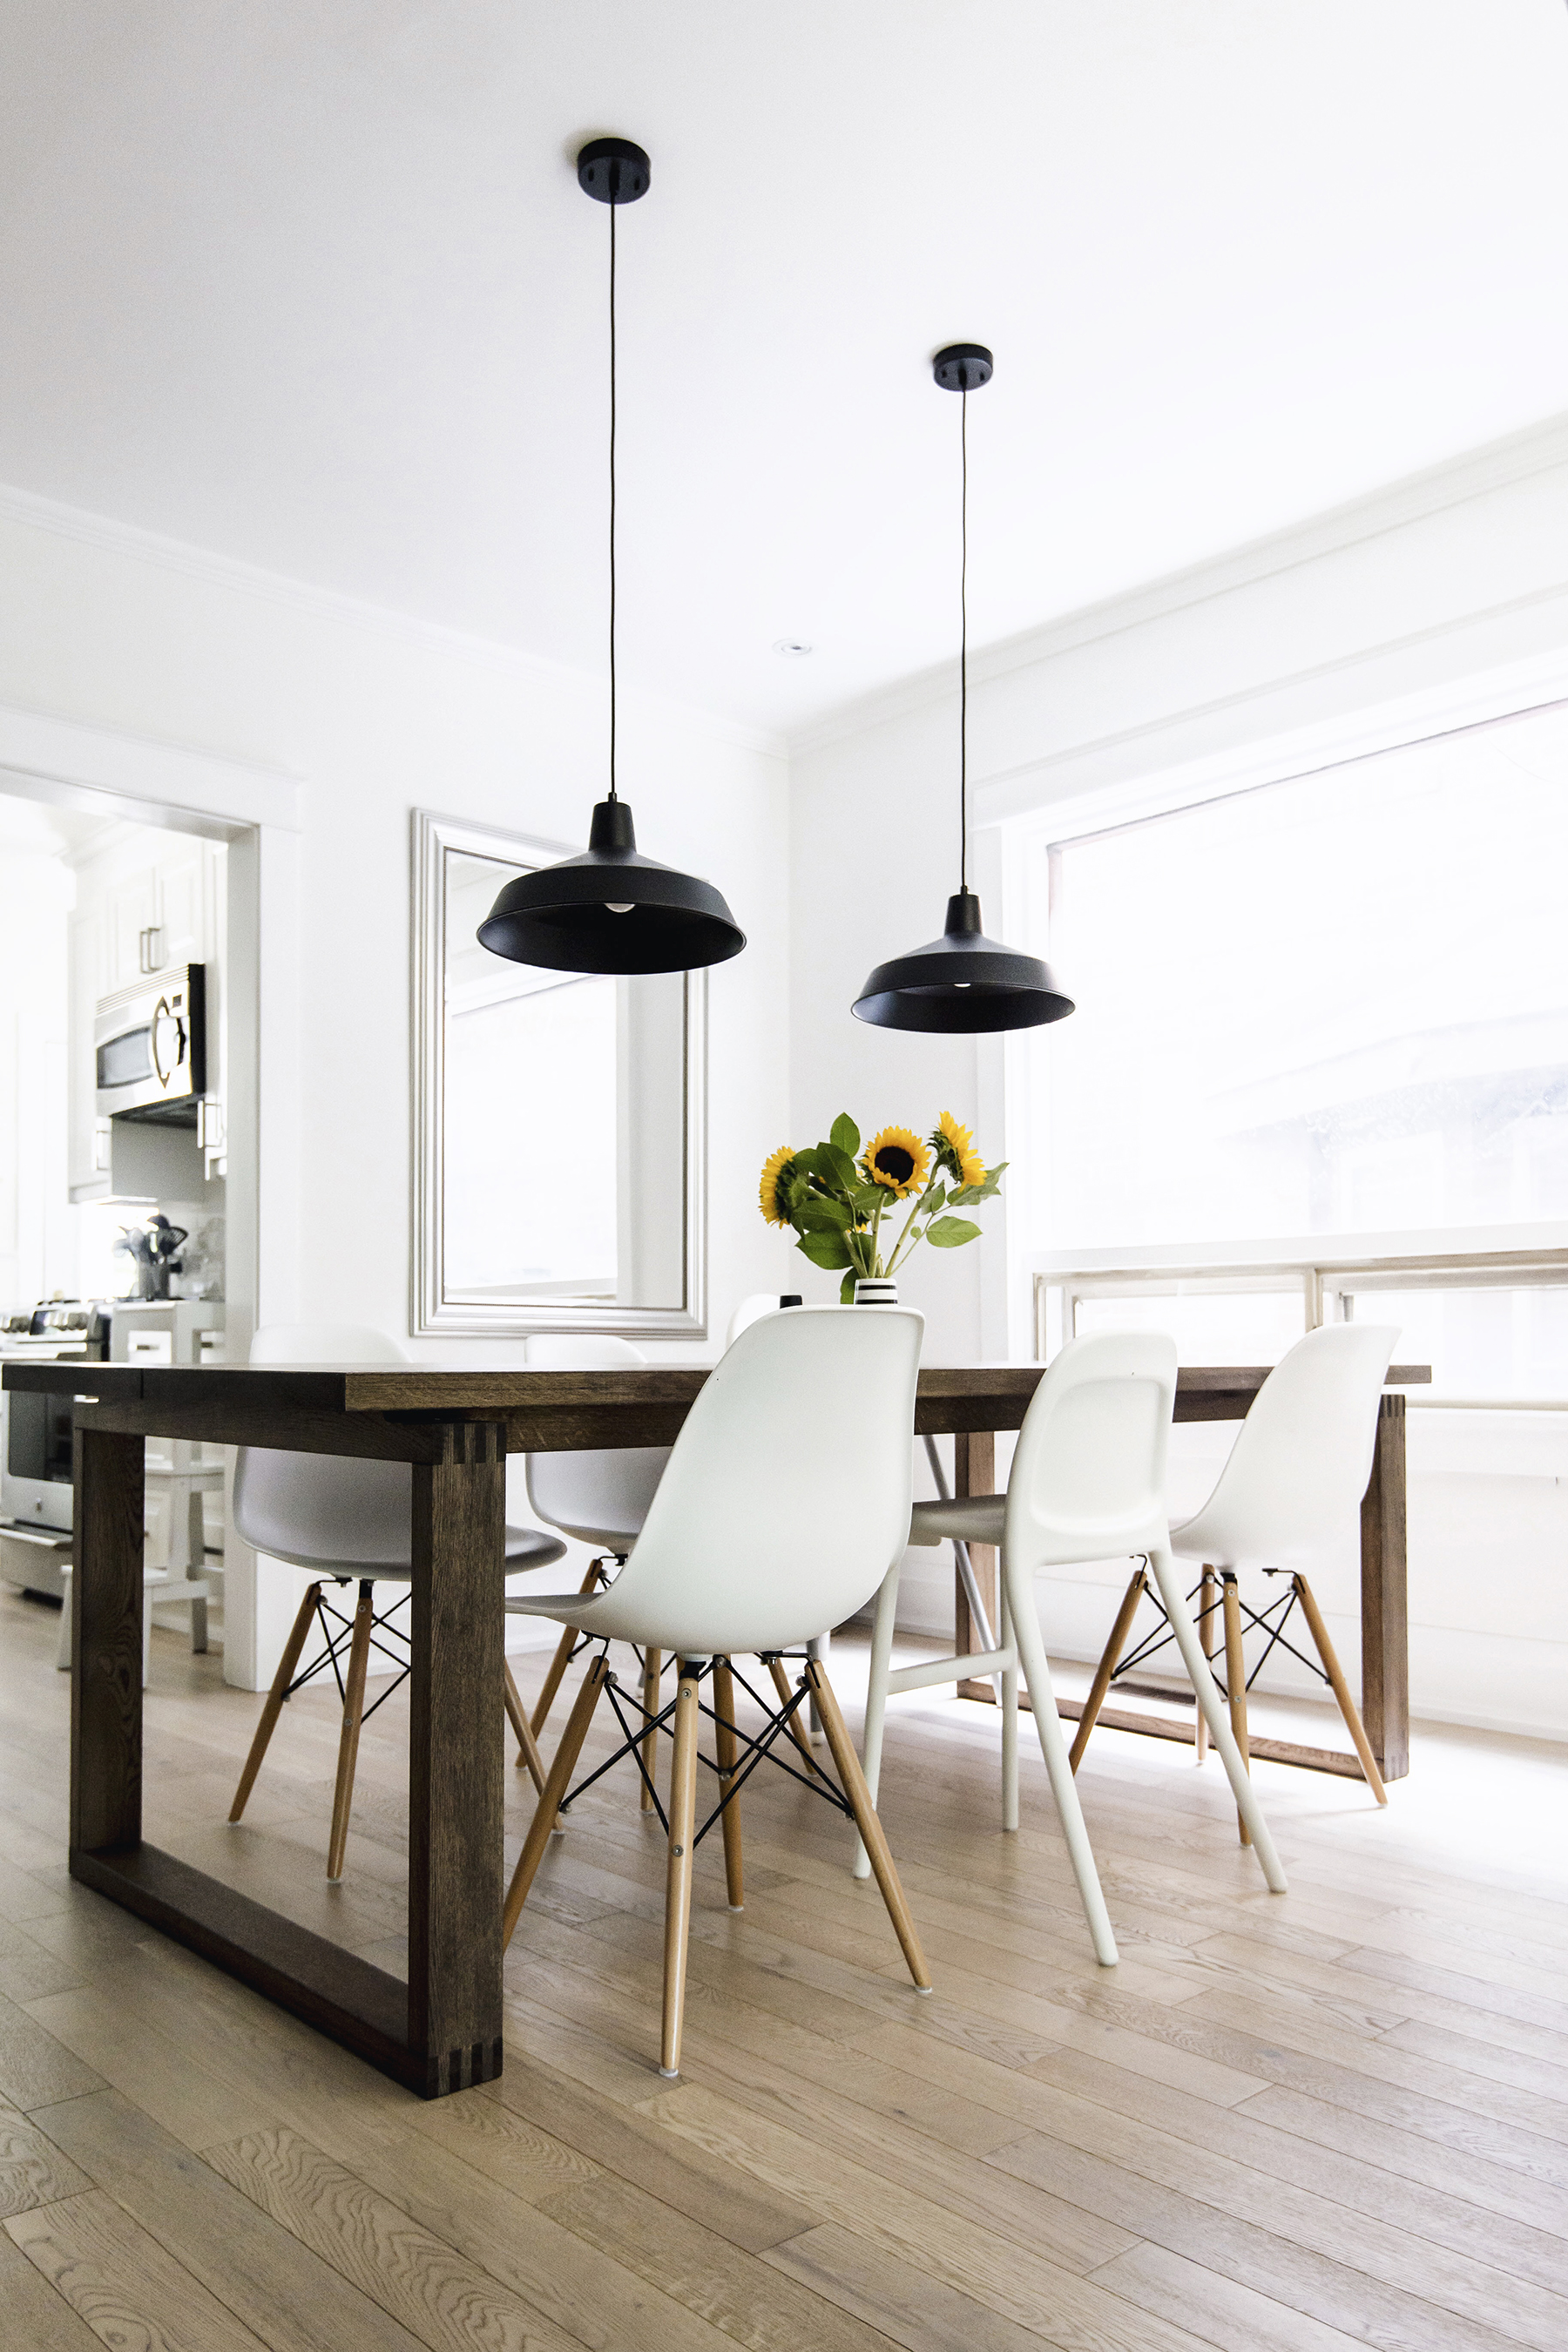 Scandinavian inspired dining room   M rbyl nga table  Eames chairs  black  warehouse pendant lamps. House Tour  Dining Room   Happy Grey Lucky